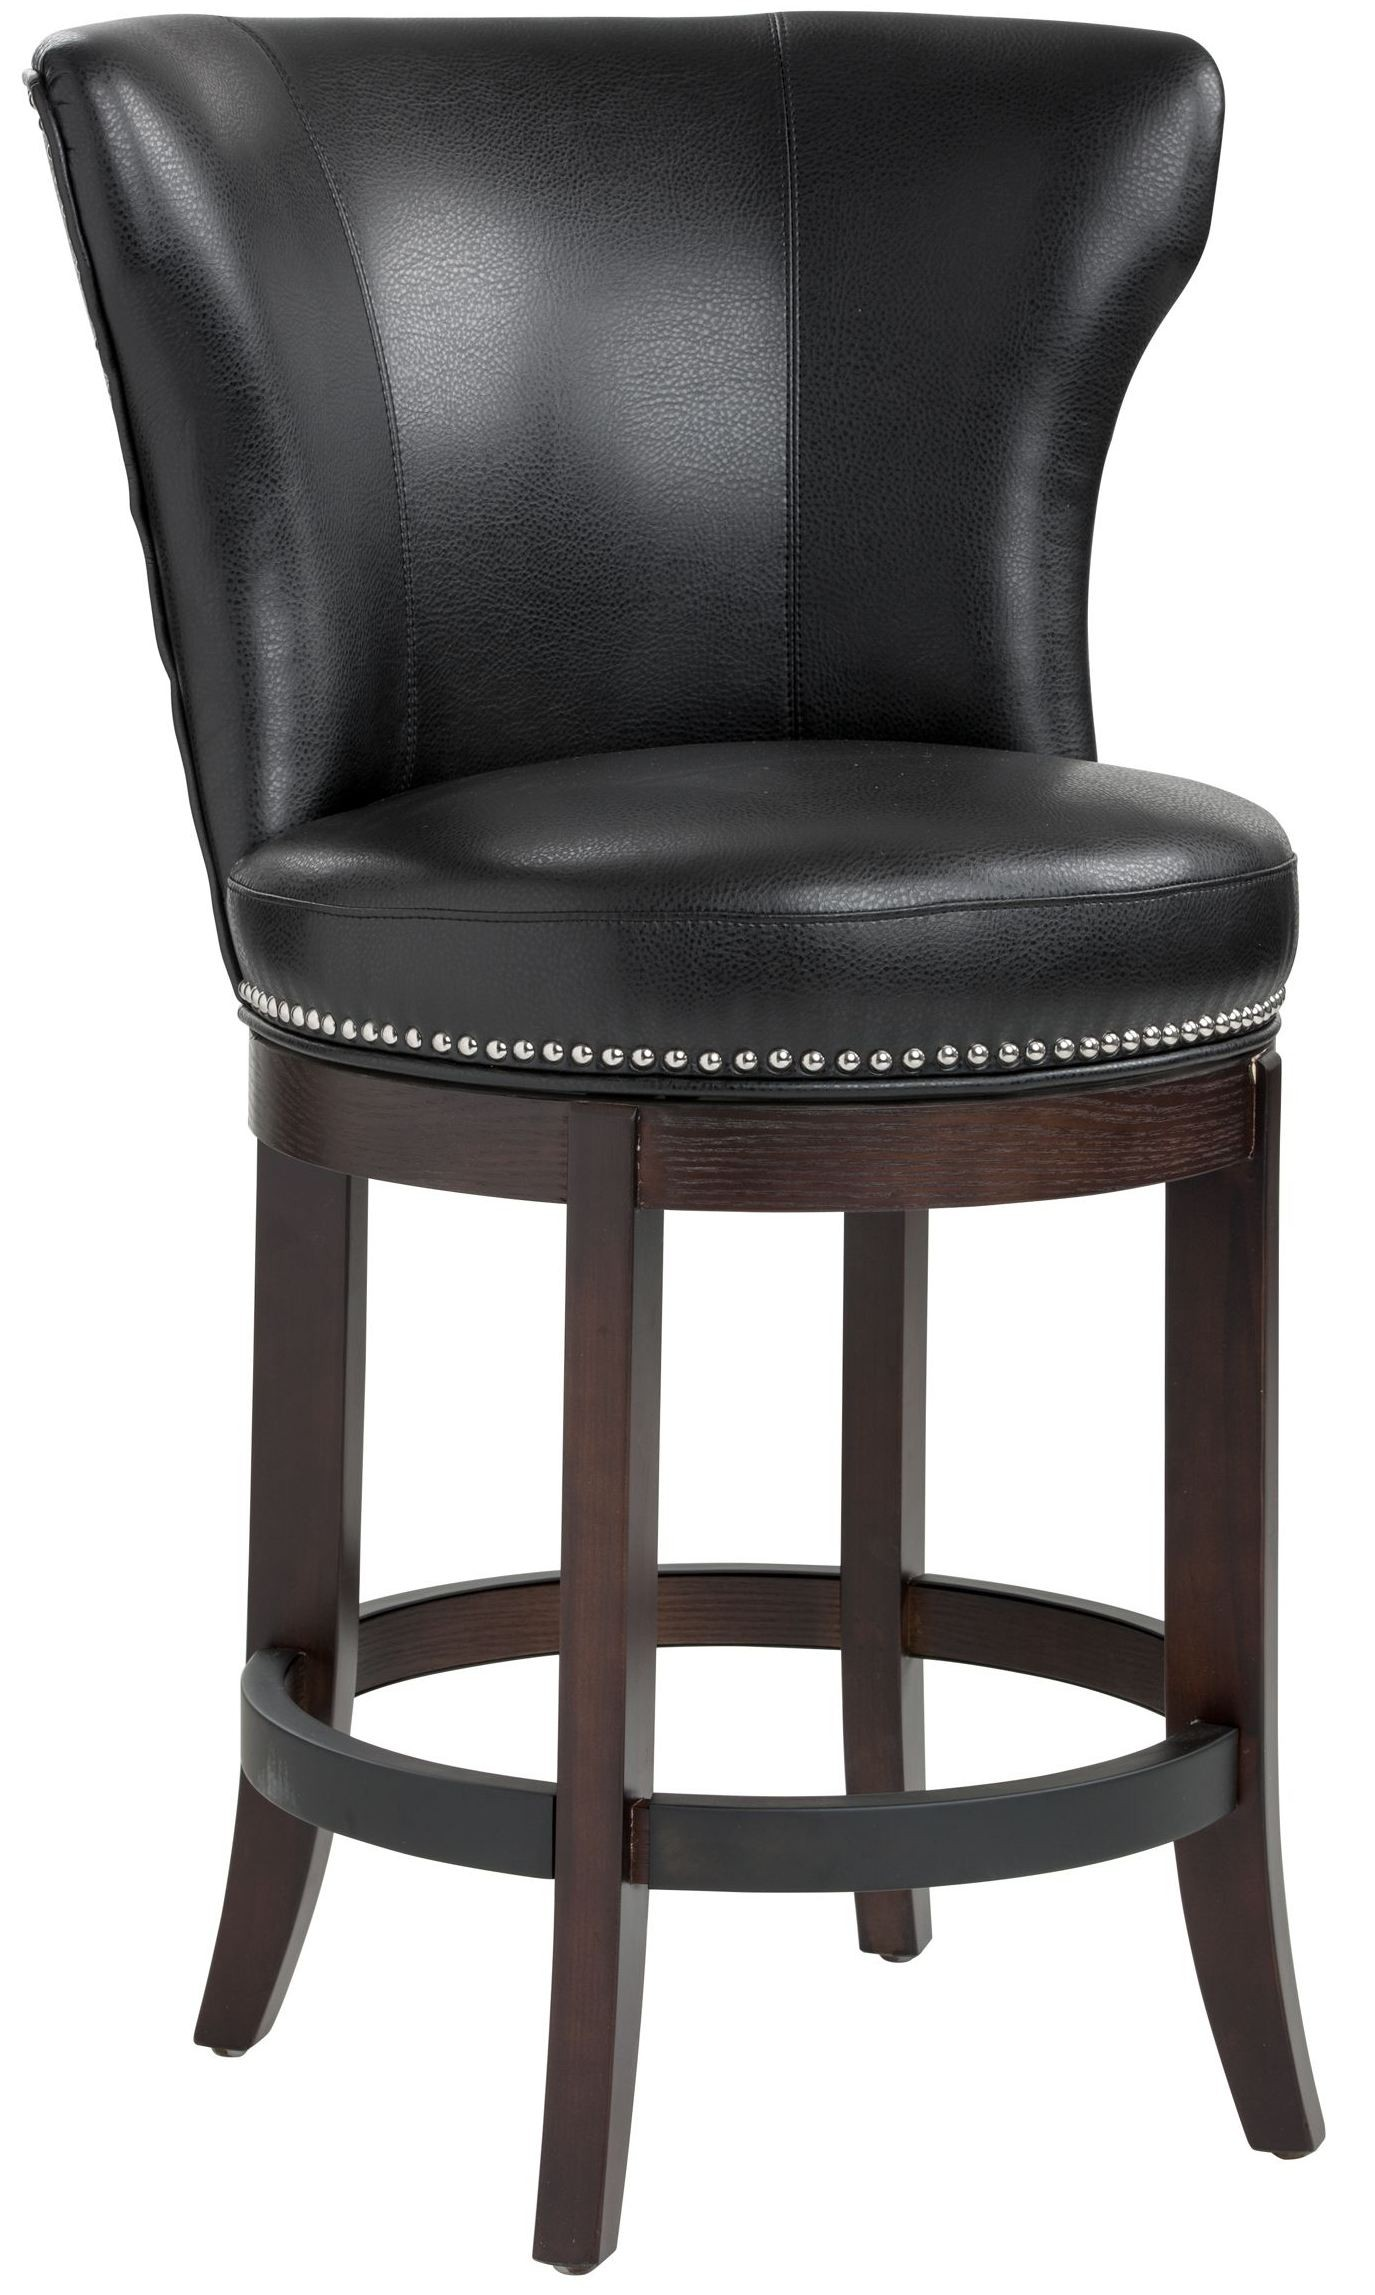 Tavern Black Leather Swivel Counter Stool 54922 Sunpan Modern Home